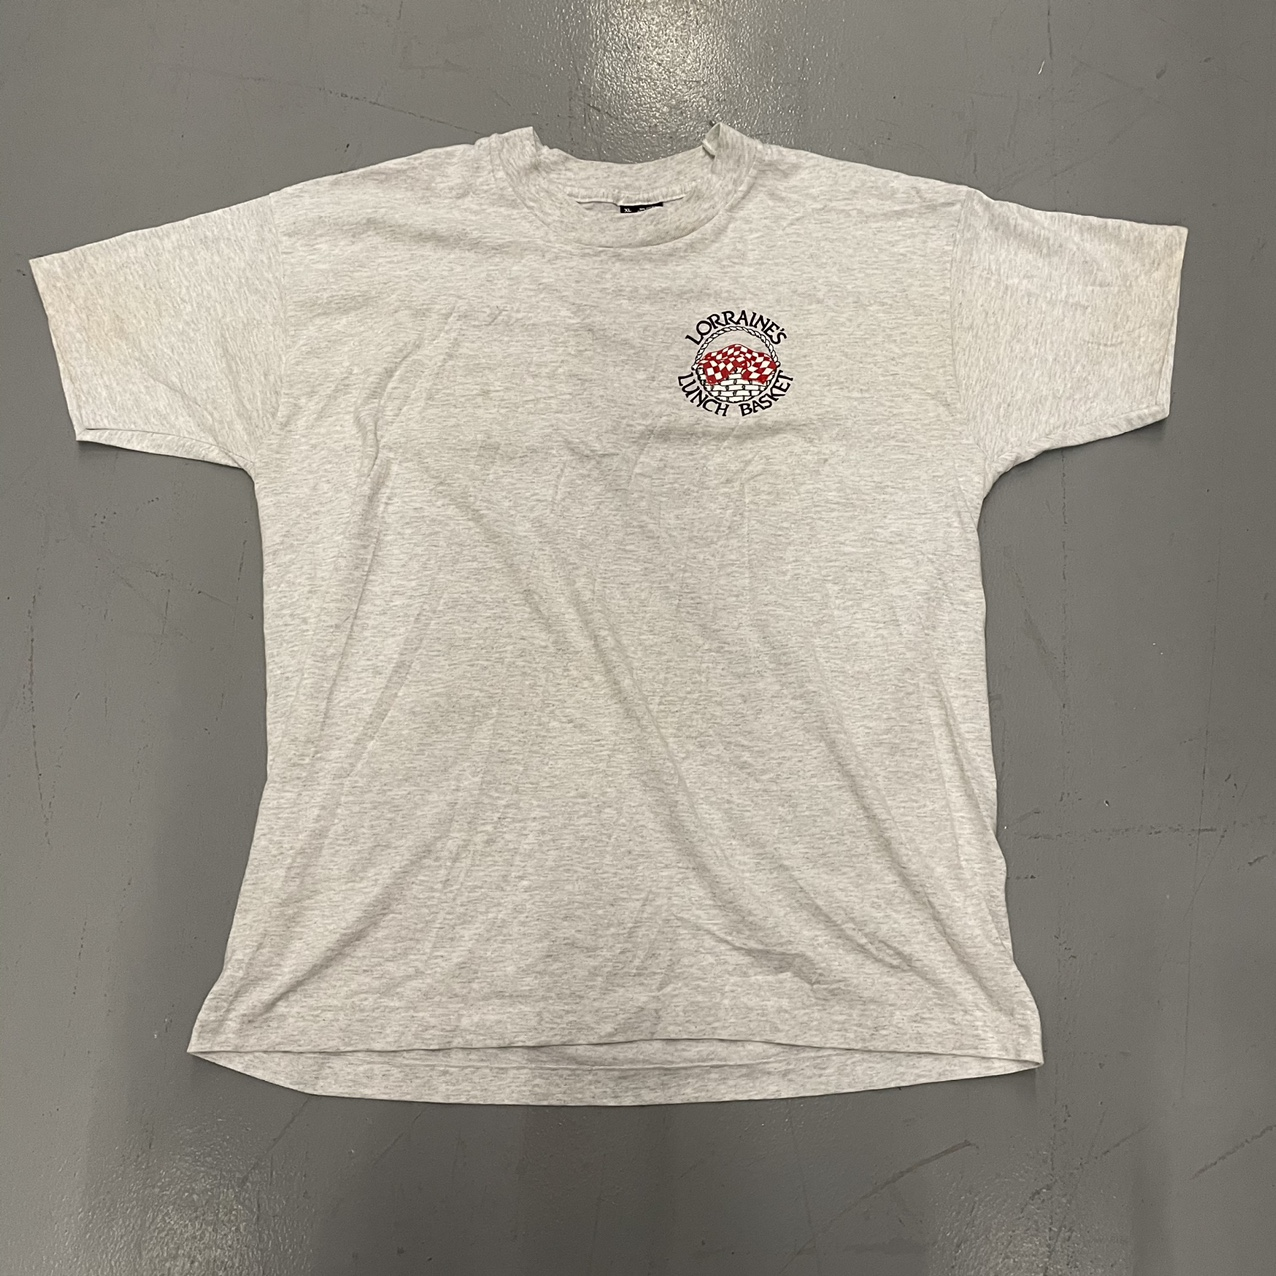 Product Image 1 - Vintage, Made in USA, Loraines